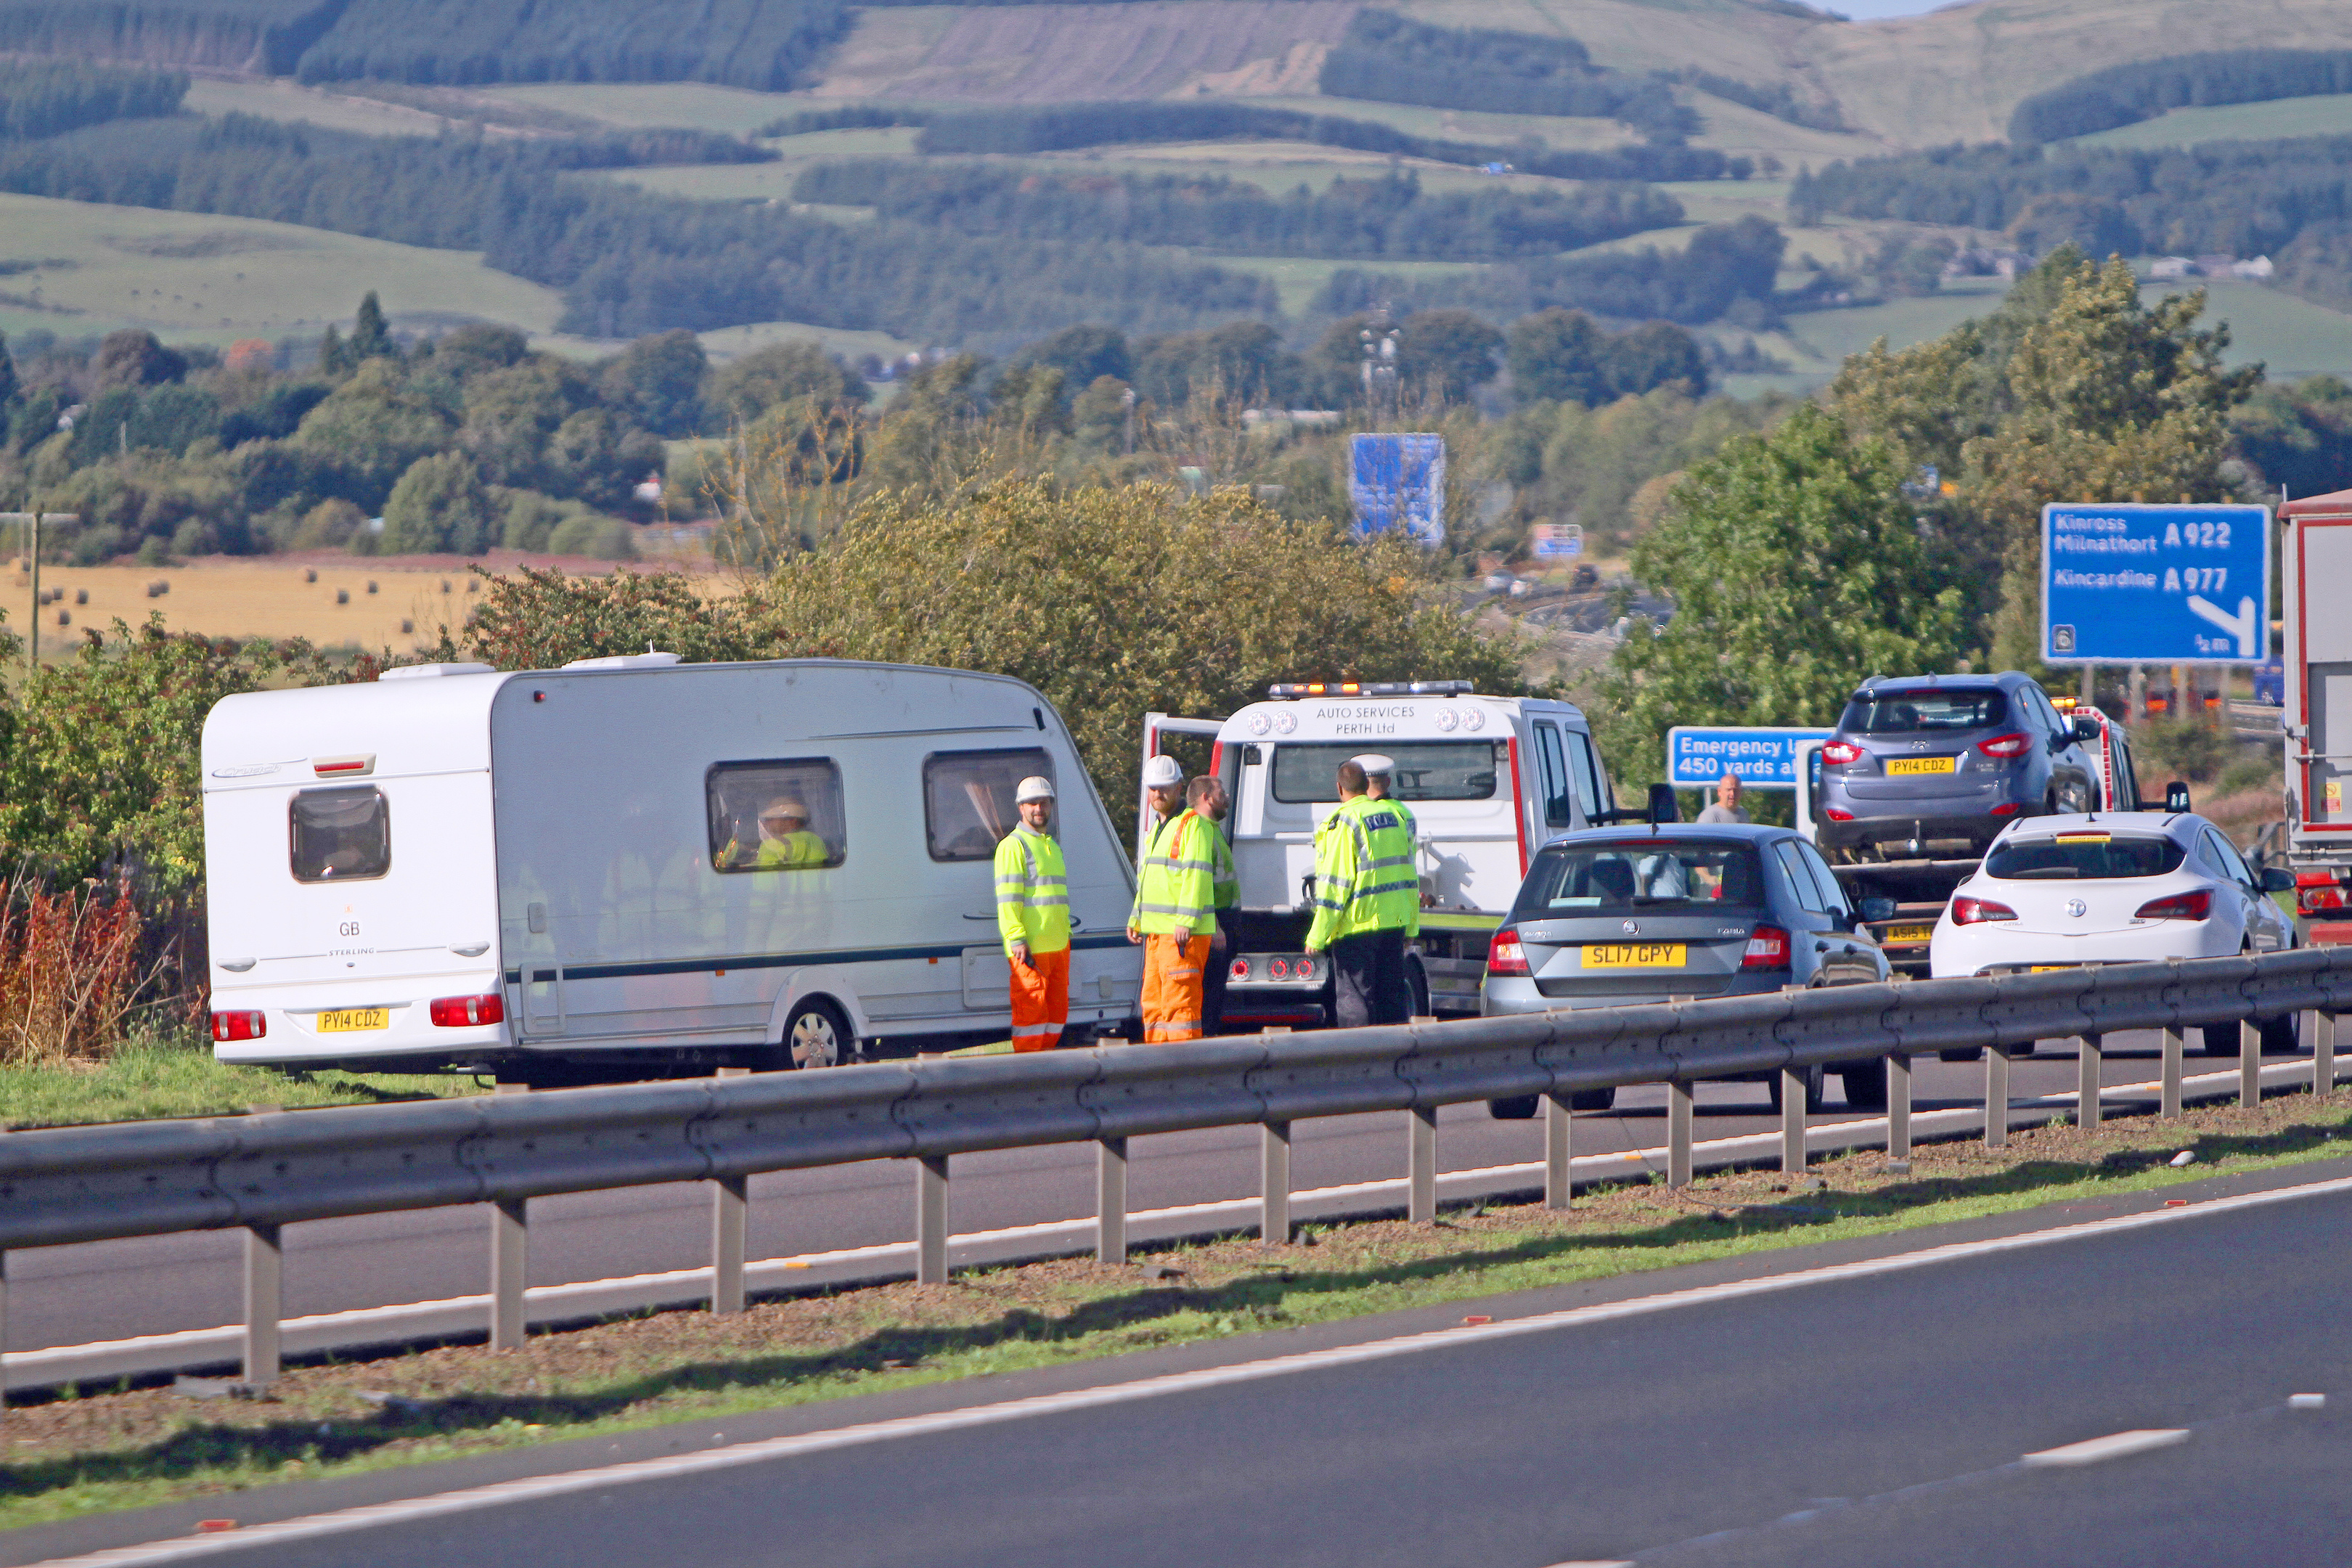 The scene of the M90 incident.